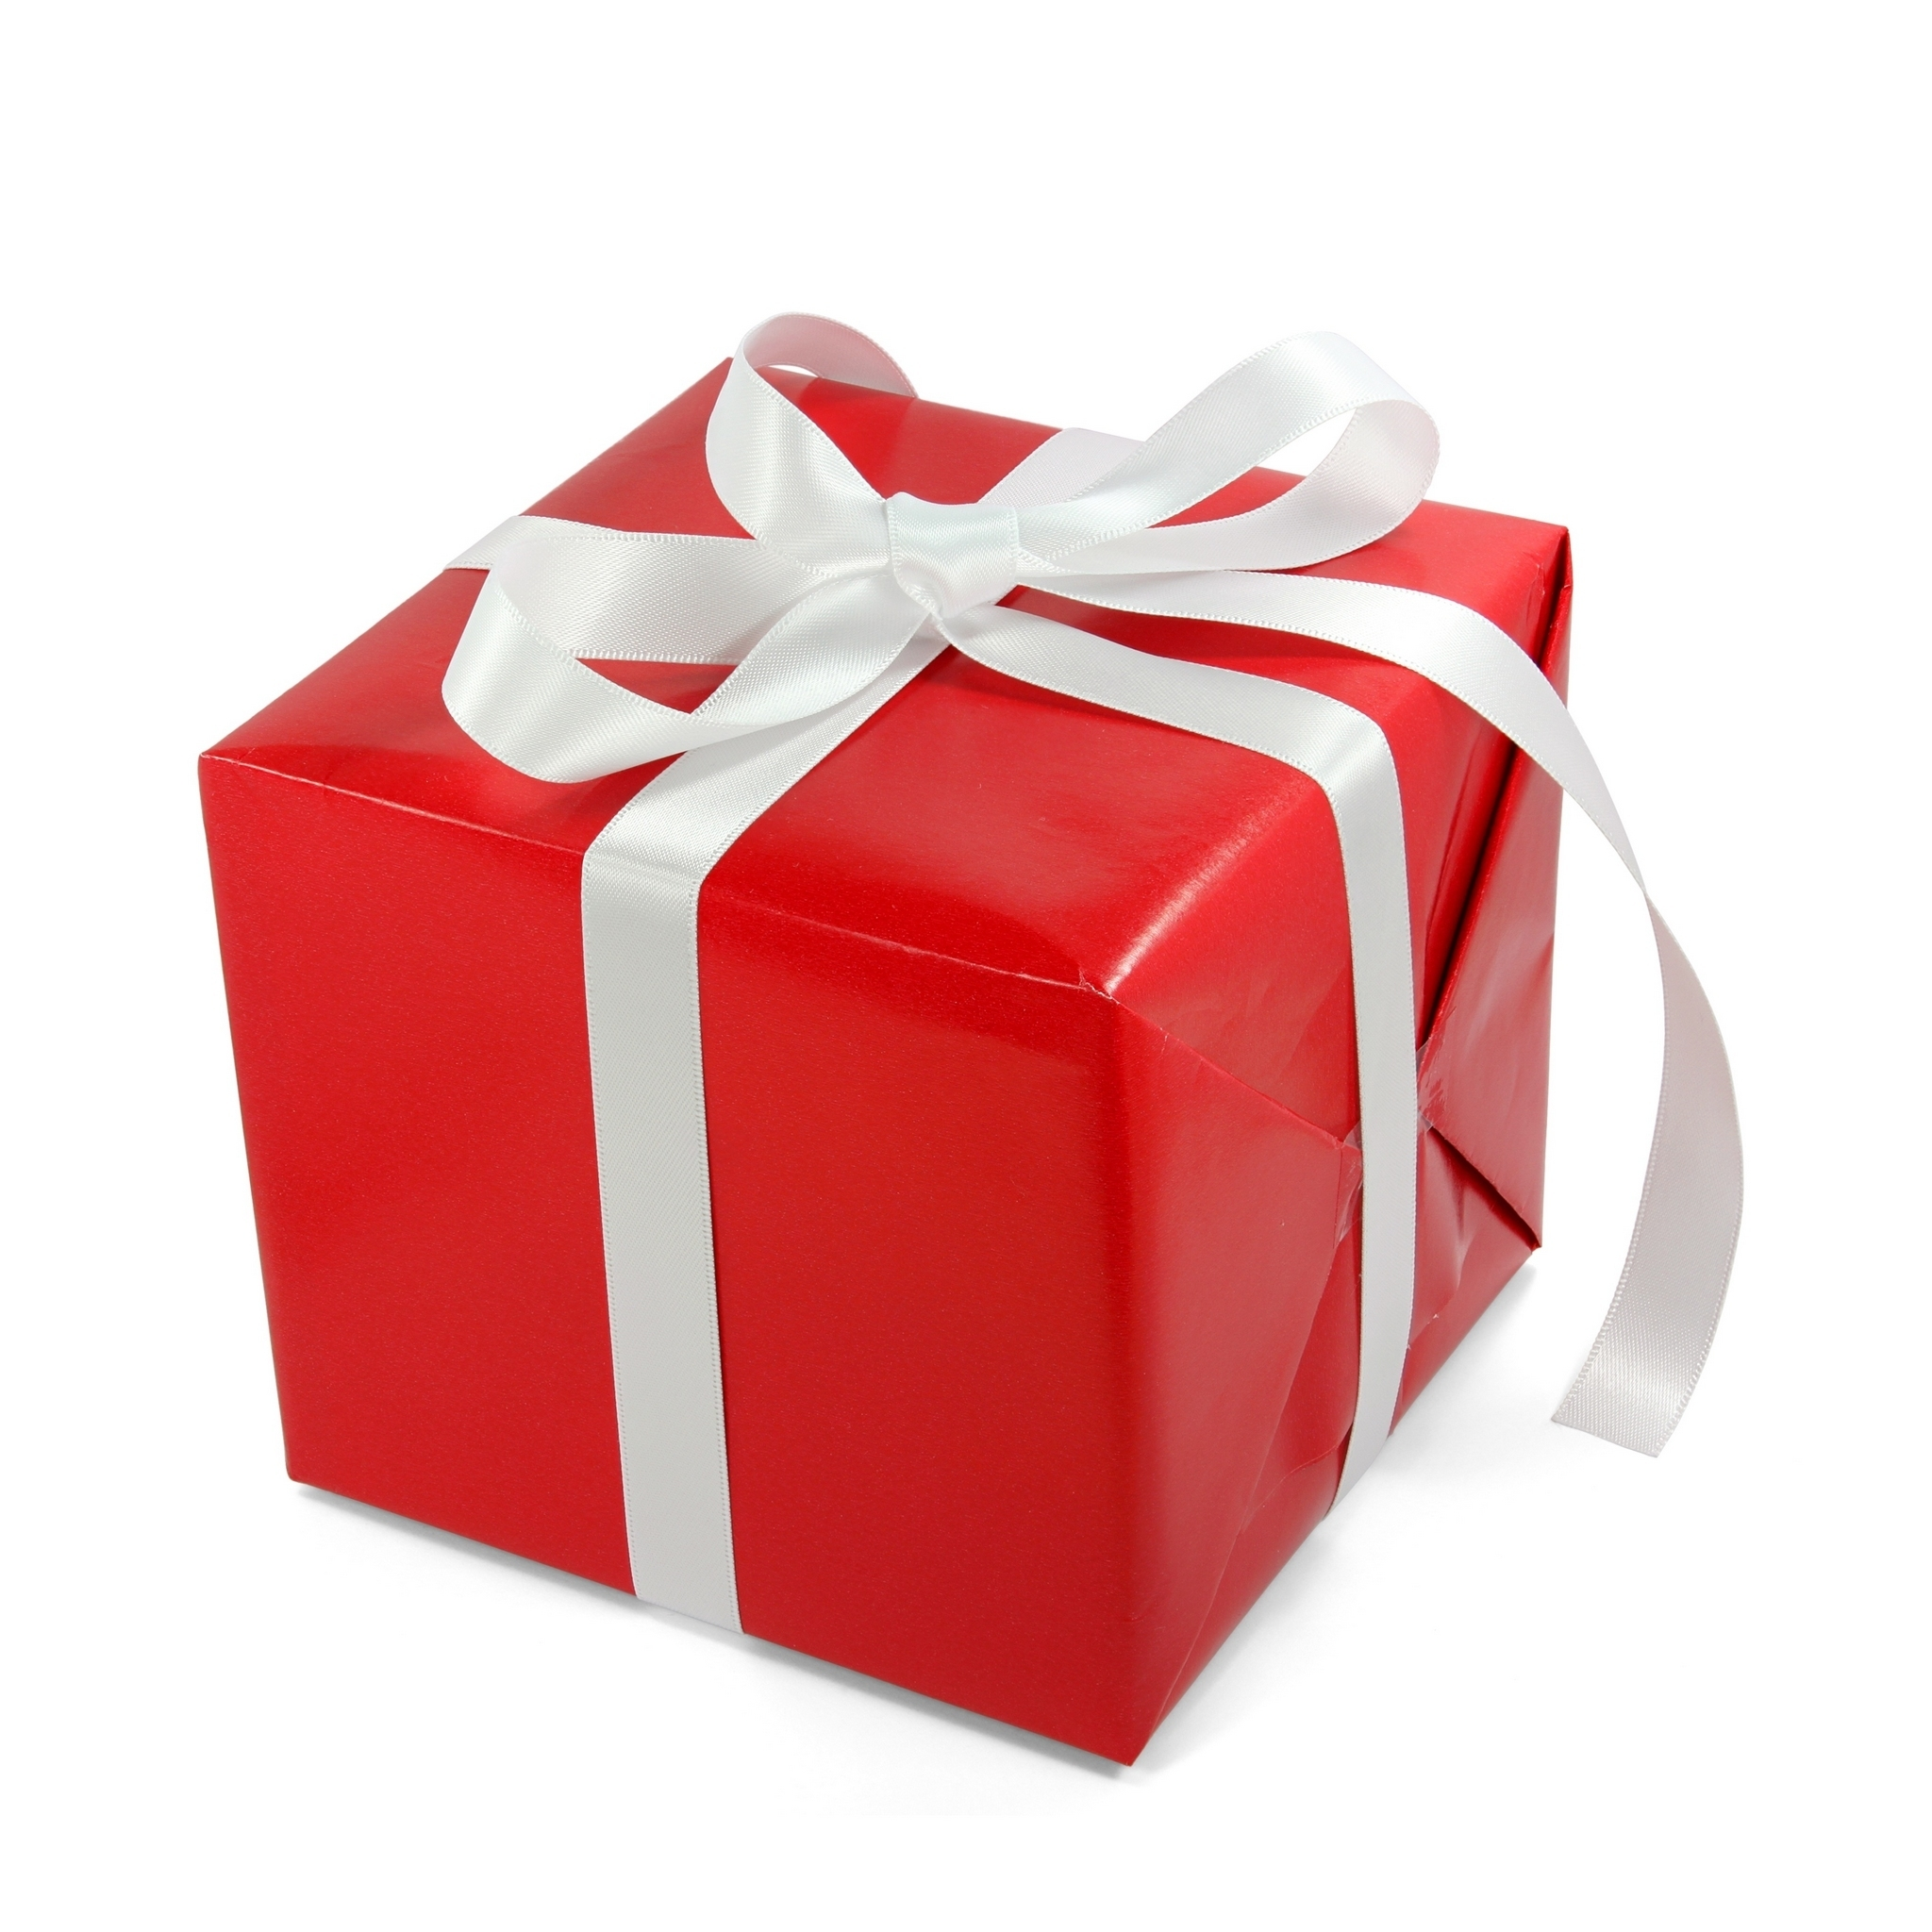 Gifts images gifts hd wallpaper and background photos 22226534 gifts images gifts hd wallpaper and background photos negle Gallery